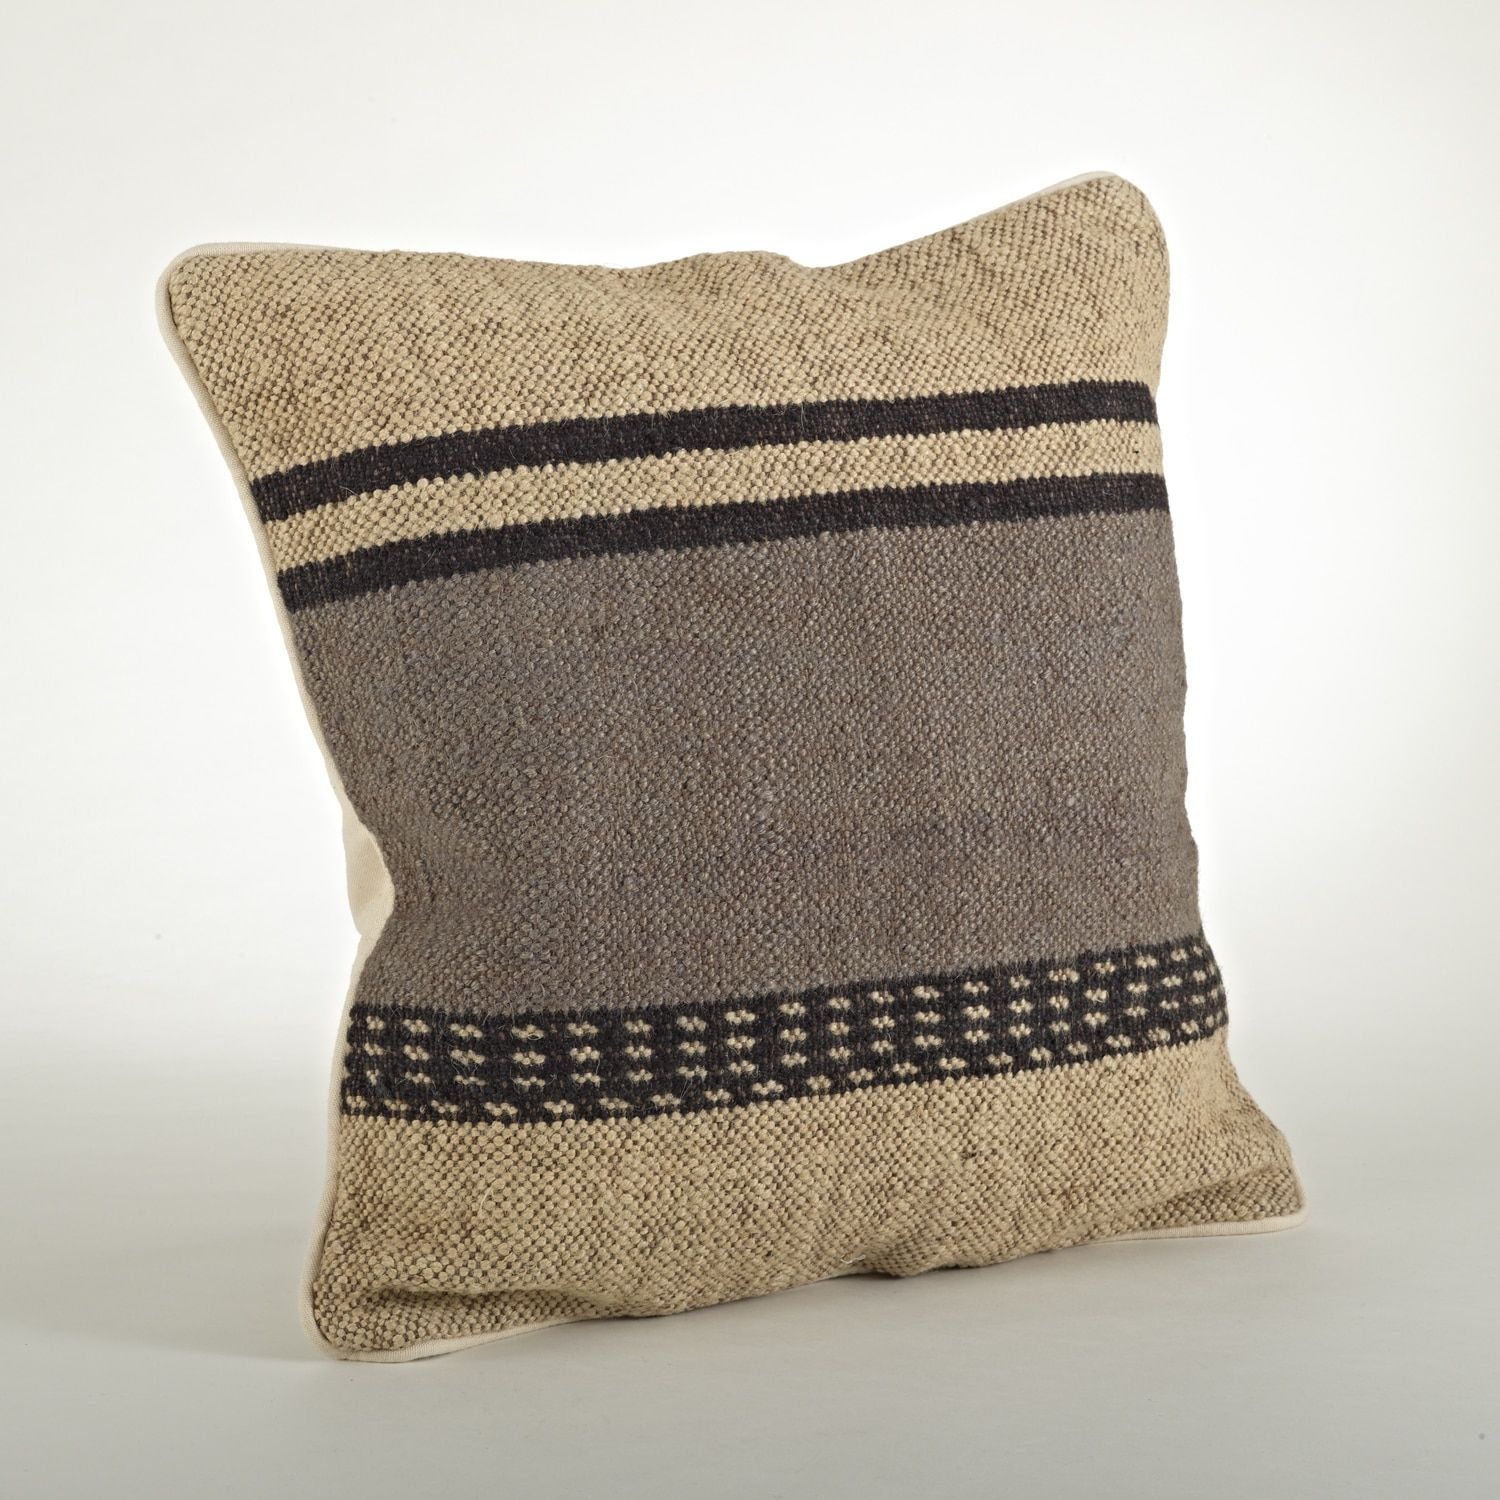 Saro Kilim Design 20 inch Throw Pillow